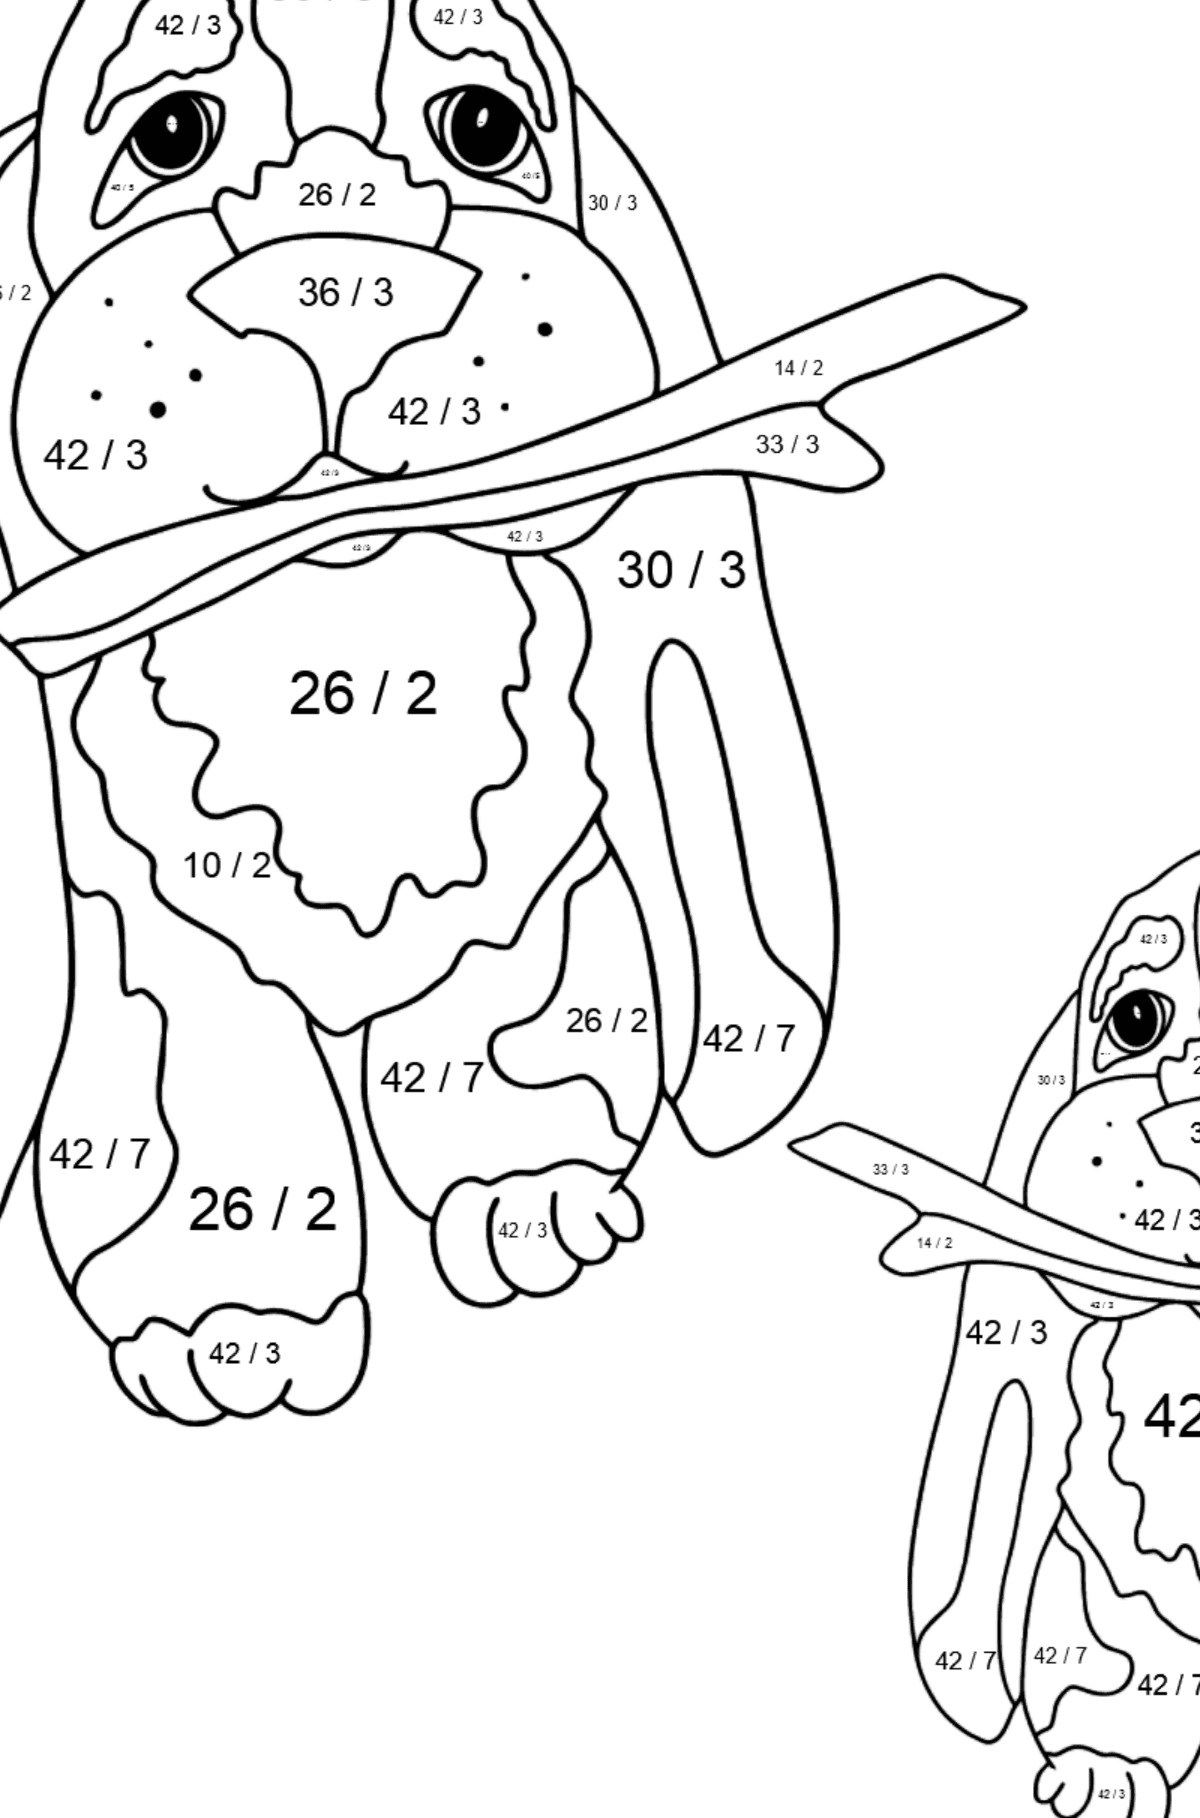 Coloring Page - Two Dogs are Playing with Sticks - Math Coloring - Division for Kids